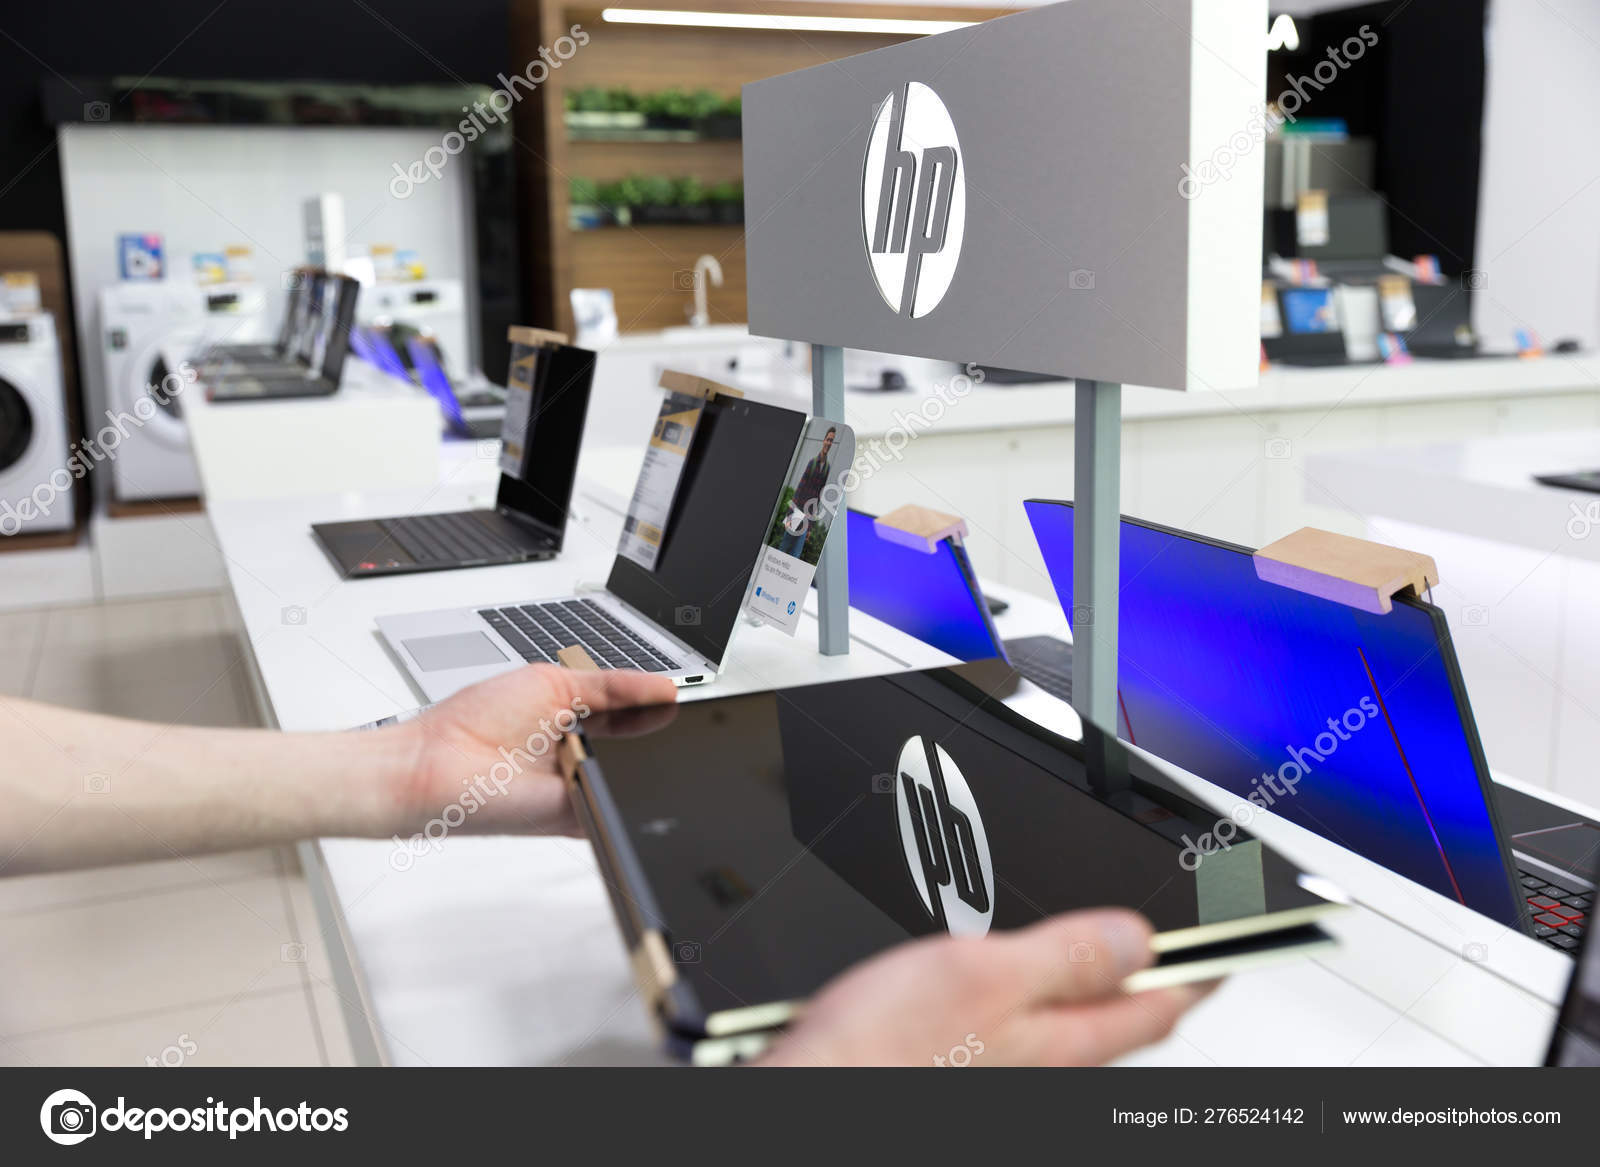 Wallpapers Best Hd For Hp Laptop New Hp Laptop Computer Displayed In Hands In Electronic Store Stock Editorial Photo C Nemanjazotovic 276524142